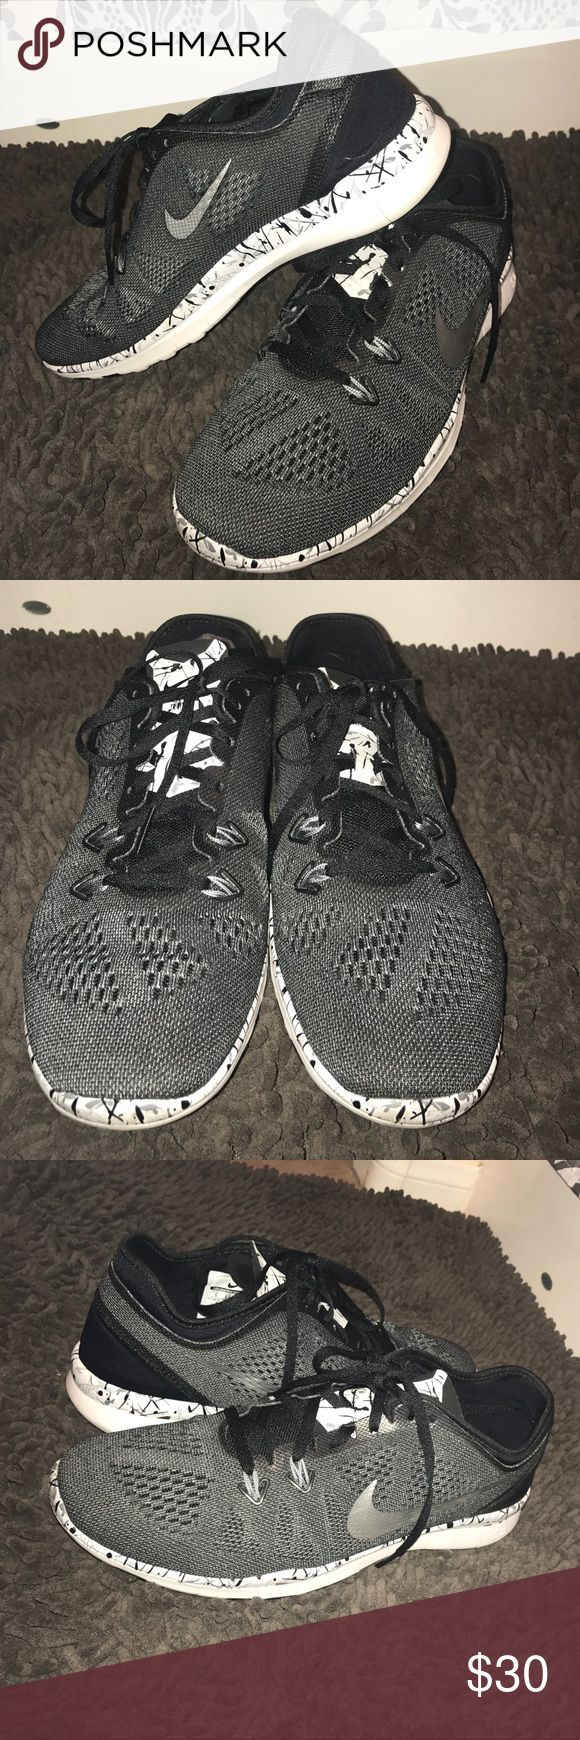 Nike Free TR Fit 5.0 Nike Free TR Fit 5.0. Size 9. Only worn indoors. Gorgeous Charcoal Gray with Black. This is a sleek shoe! Nike Shoes Athletic Shoes